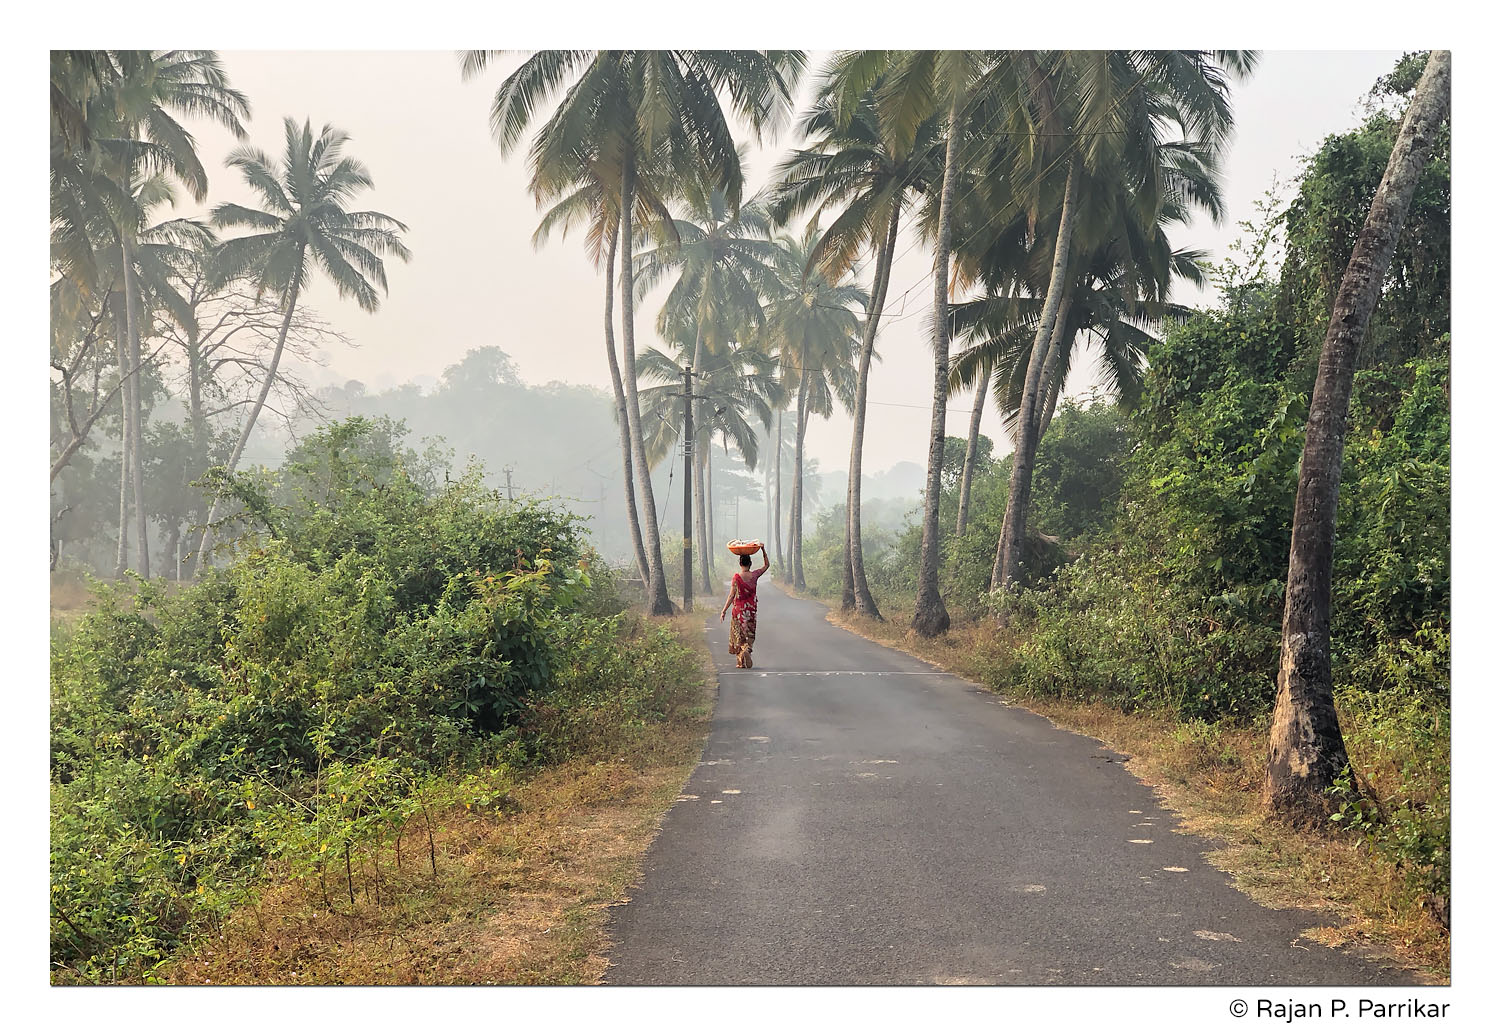 Fisherwoman on her rounds in Talaulim, Goa